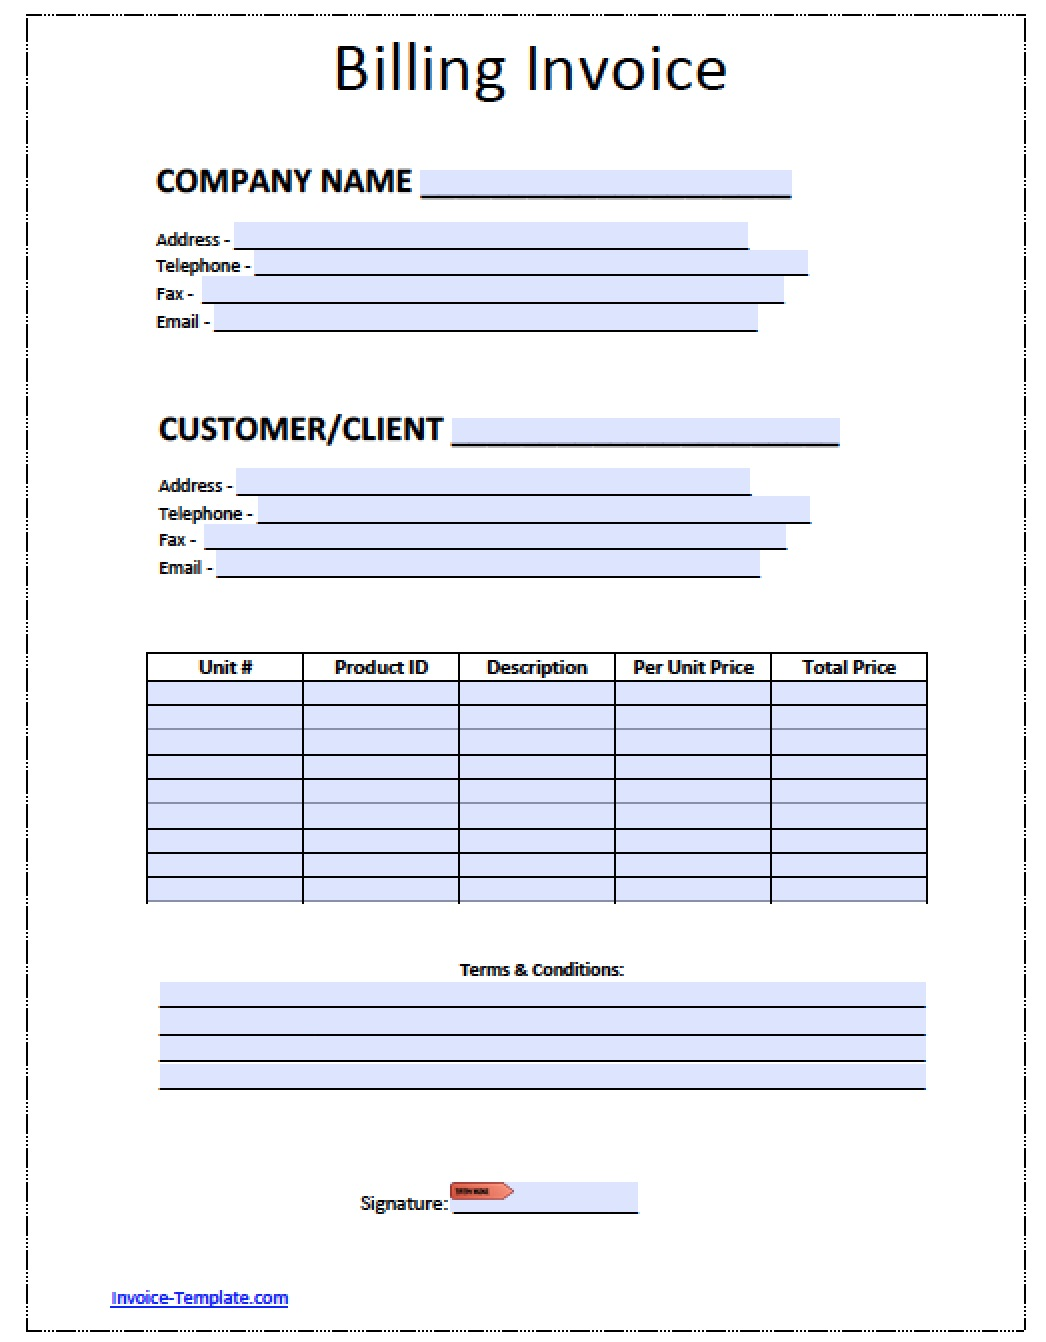 Centralasianshepherdus  Inspiring Billing Invoice Invoices Faq U Cloudflare Support Billing  With Fascinating Free Billing Invoice Template  Excel  Pdf  Word Doc  Billing With Amazing Microsoft Office Invoices Also Payment Due Upon Receipt Invoice In Addition New Car Invoice Price By Vin And Tnt E Invoice As Well As Google Invoice Template Free Additionally Proforma Invoice Requirements From Happytomco With Centralasianshepherdus  Fascinating Billing Invoice Invoices Faq U Cloudflare Support Billing  With Amazing Free Billing Invoice Template  Excel  Pdf  Word Doc  Billing And Inspiring Microsoft Office Invoices Also Payment Due Upon Receipt Invoice In Addition New Car Invoice Price By Vin From Happytomco